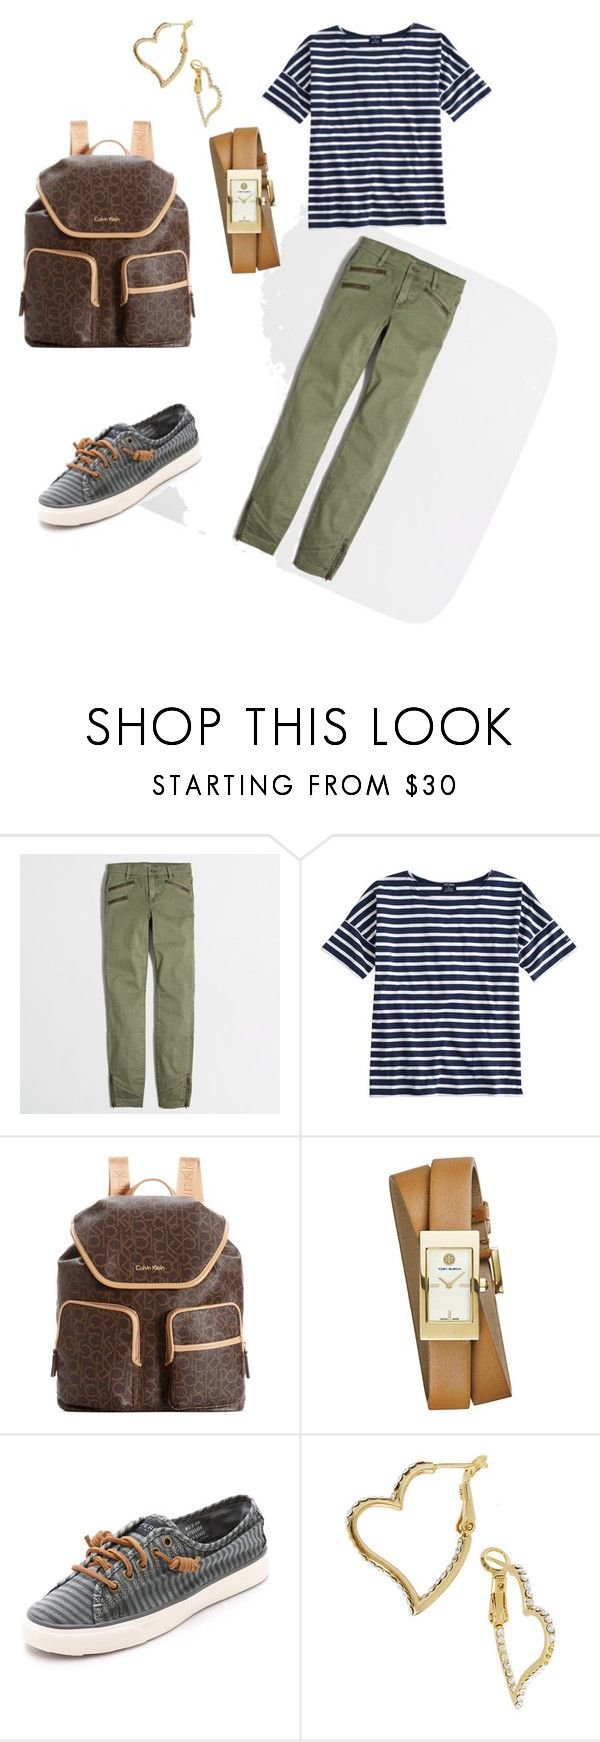 """""""back to school"""" by laydasaavedra ❤ liked on Polyvore featuring J.Crew, Saint James, Calvin Klein, Tory Burch, Sperry and Betsey Johnson"""